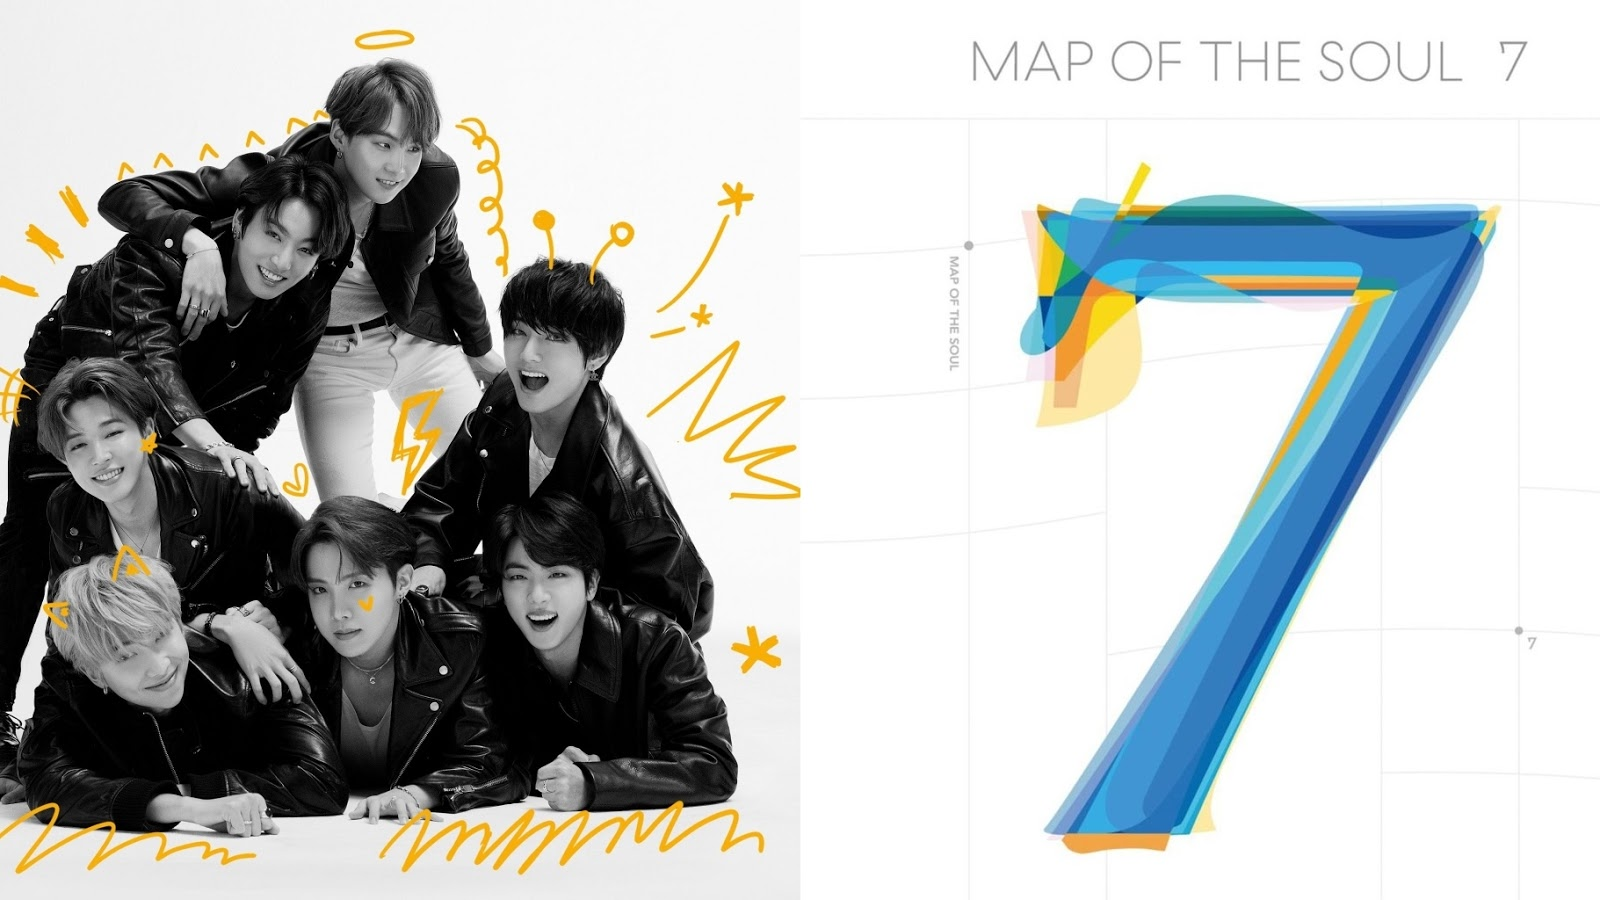 BTS 'Map of the Soul: 7' Album Got Silver Certificate in the UK